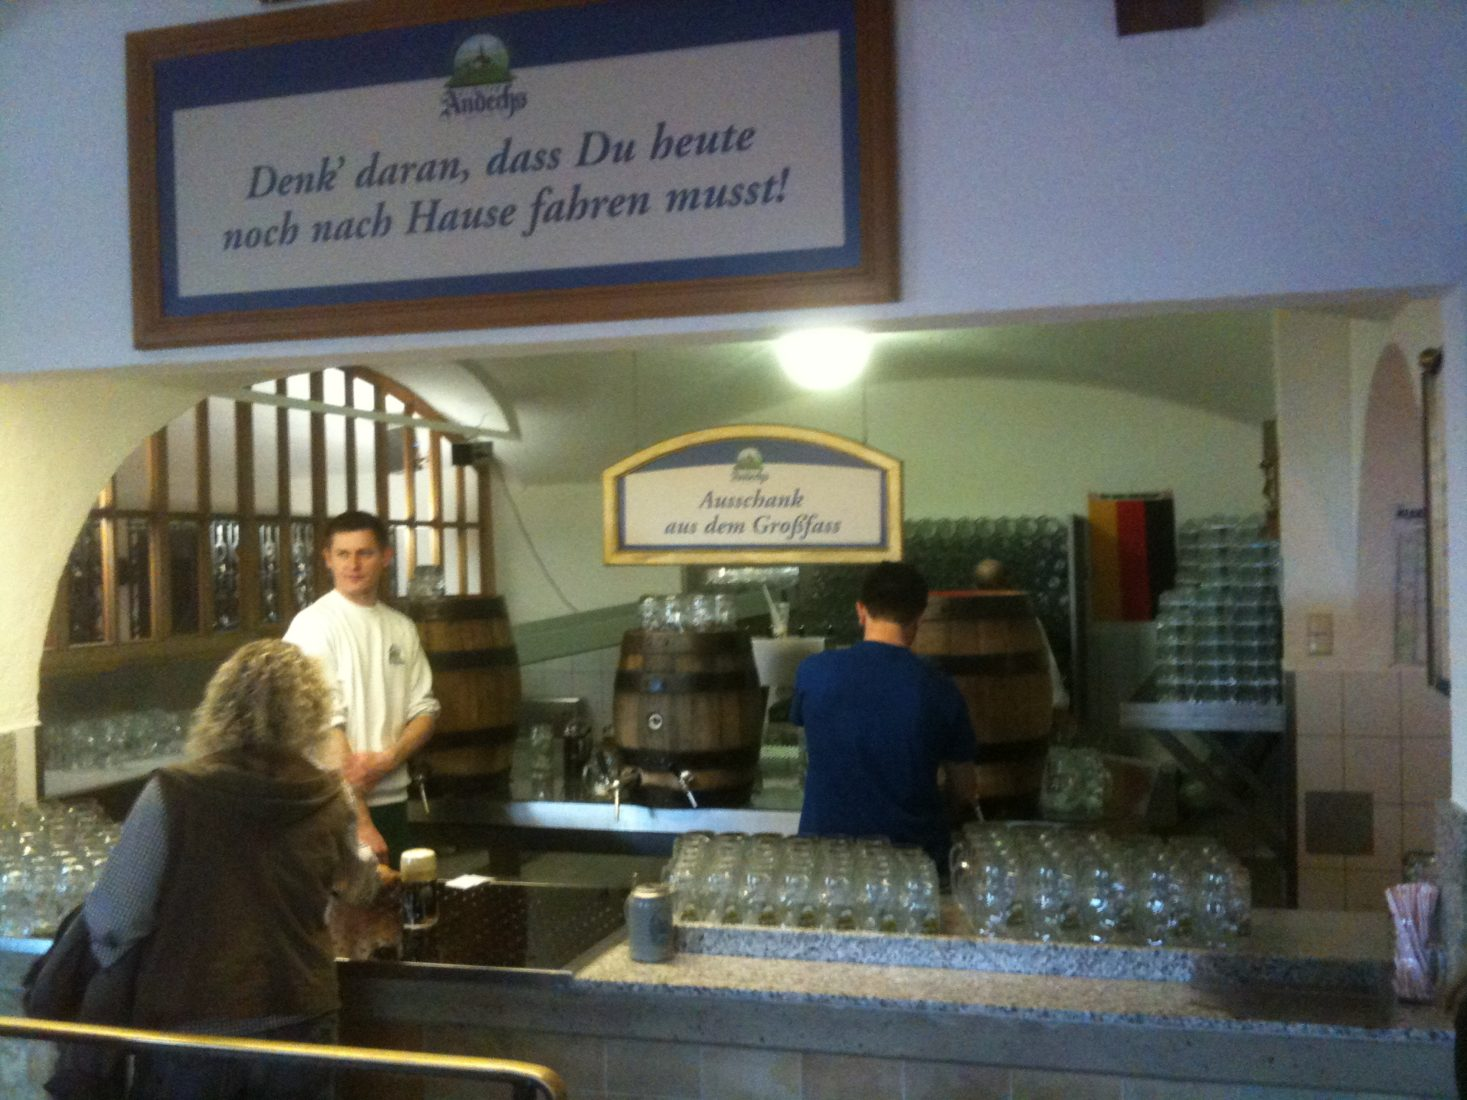 96. Andechs Kloster, Holy Mountain, Germany 2010